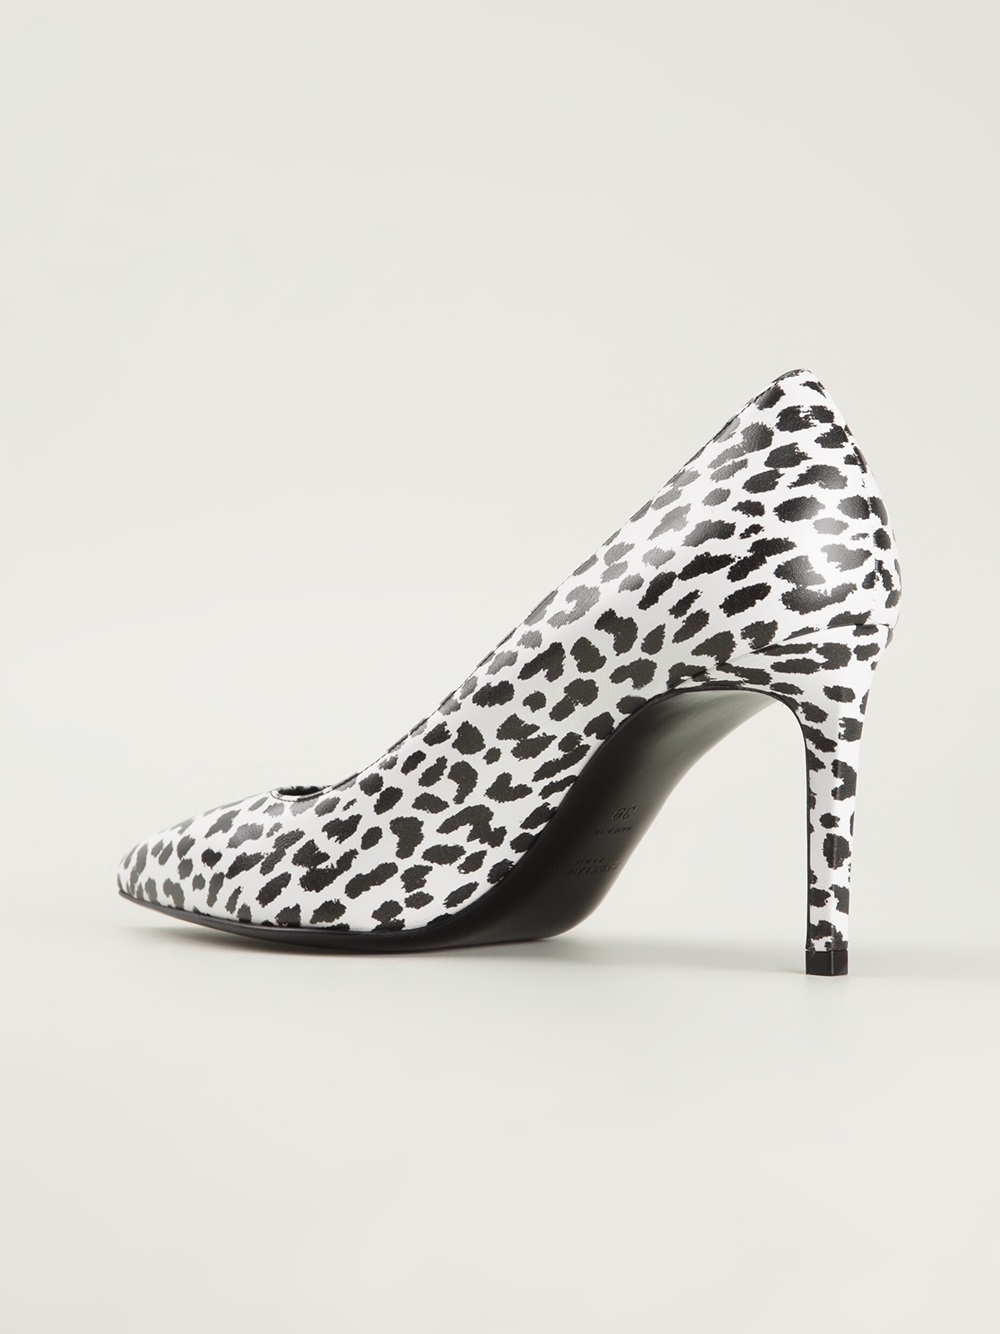 Find black and white leopard print shoes at ShopStyle. Shop the latest collection of black and white leopard print shoes from the most popular stores.